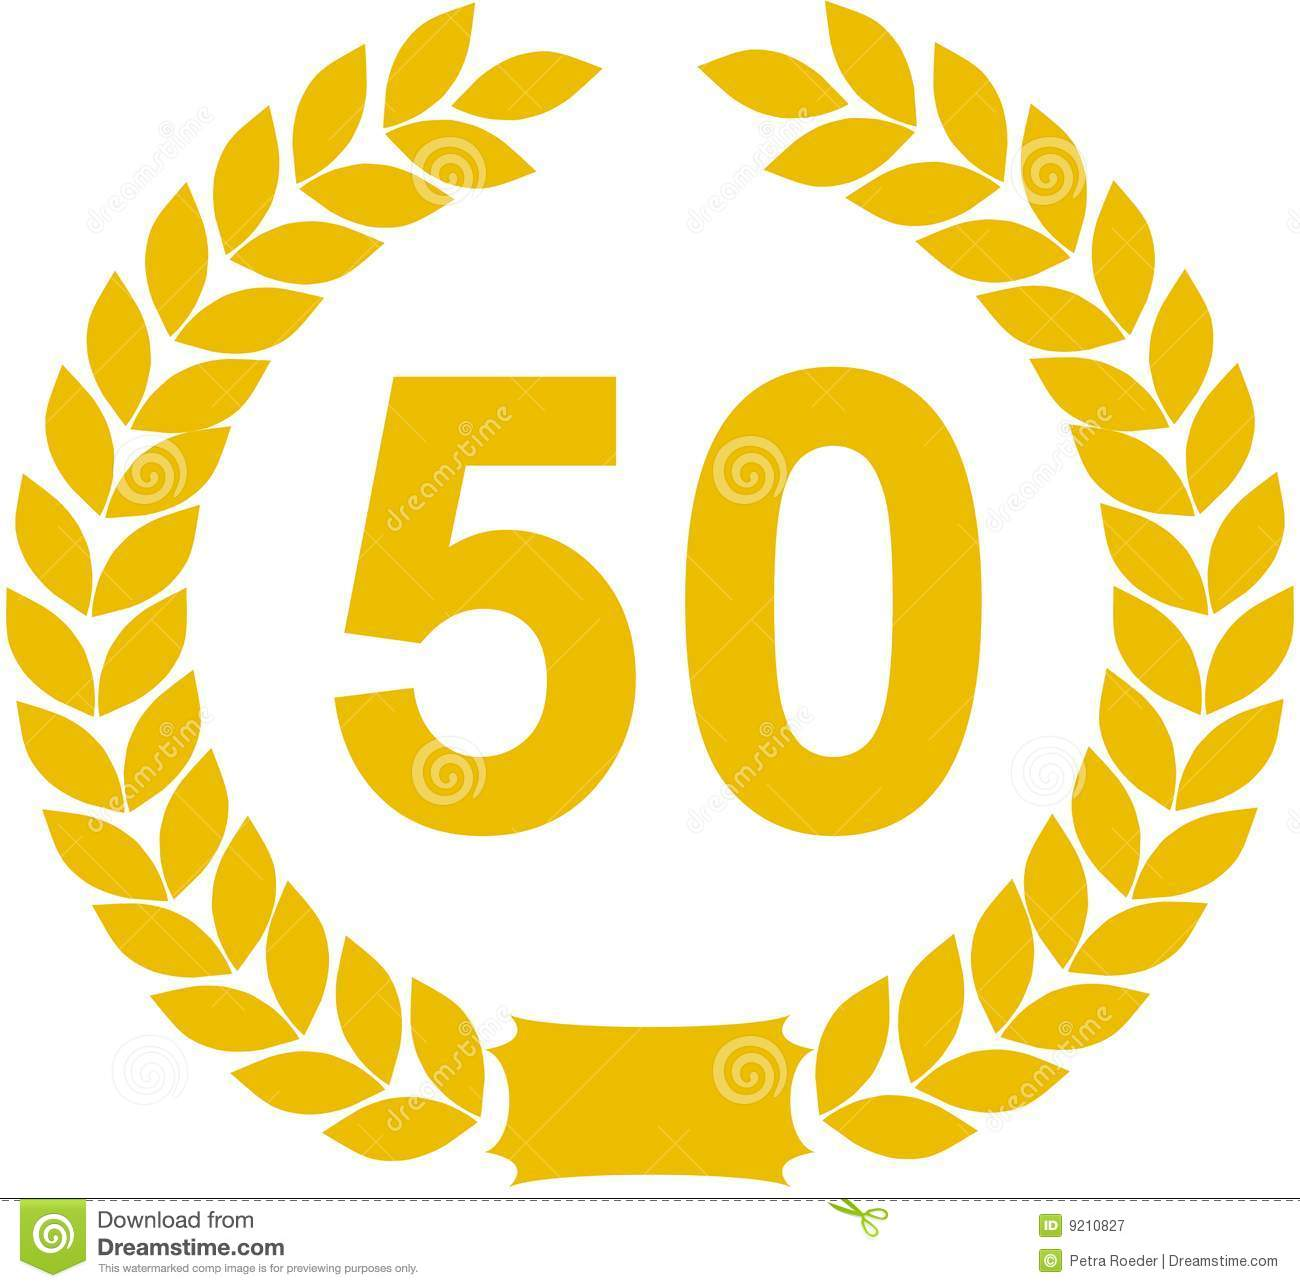 Laurel wreath 50 years royalty free stock photography image 9210827 - Clipart anniversaire 50 ans ...